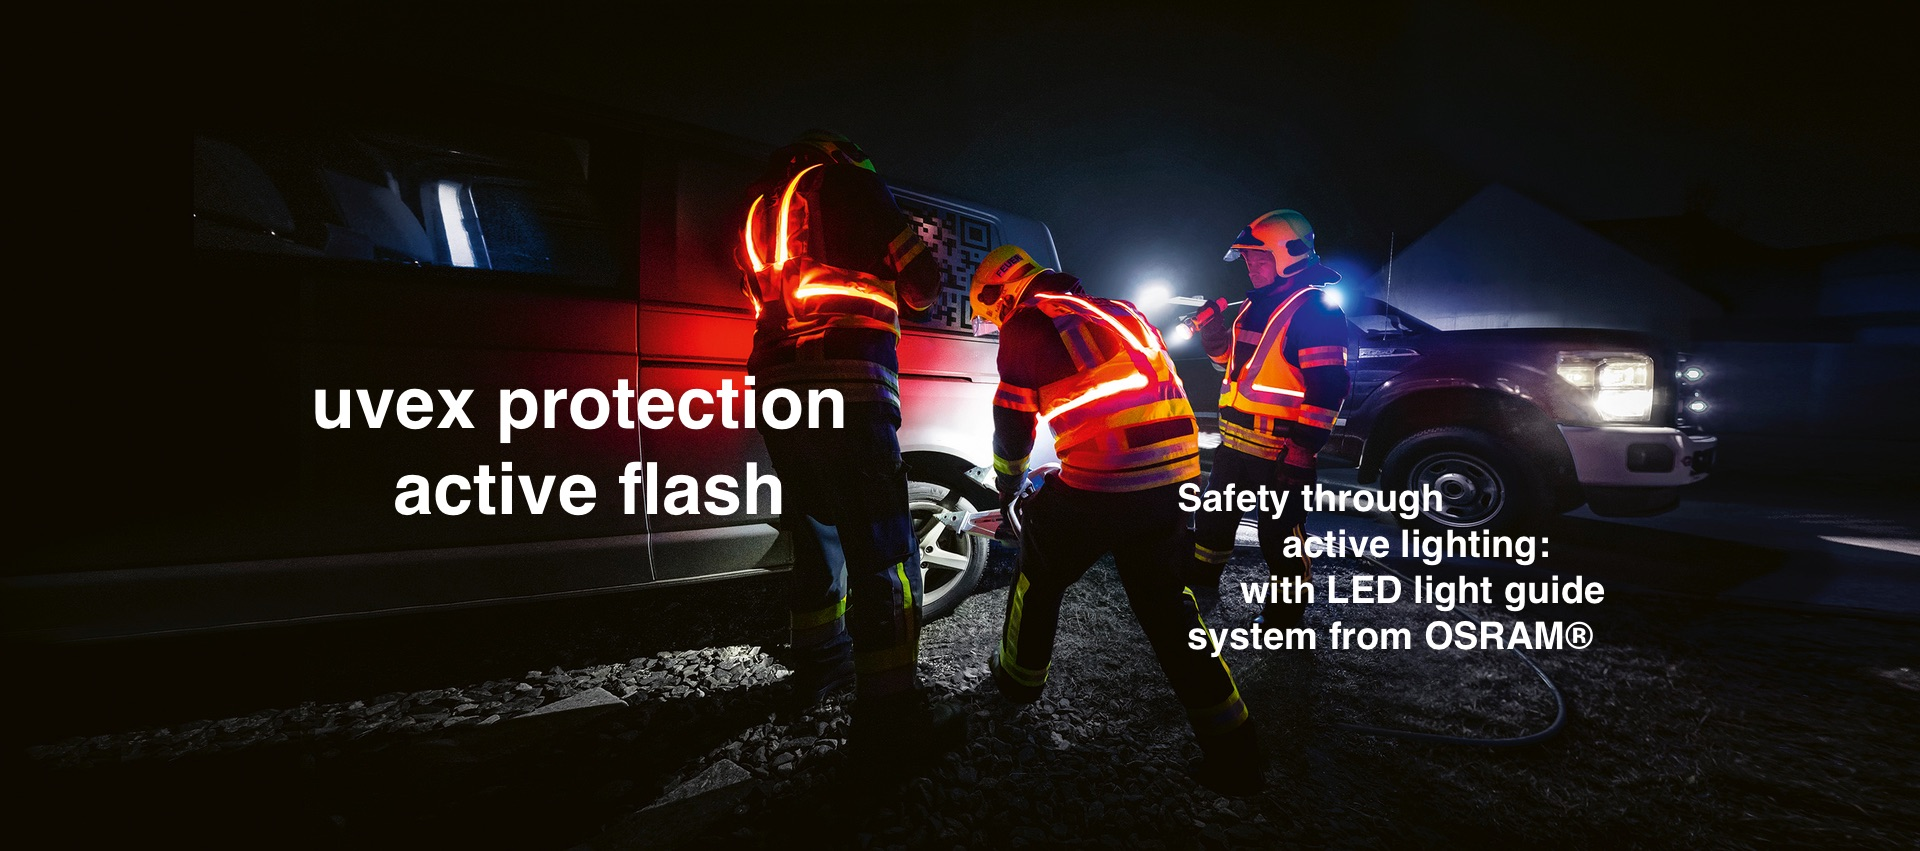 [Translate to Dutch:] safety through active lighting for firefighting